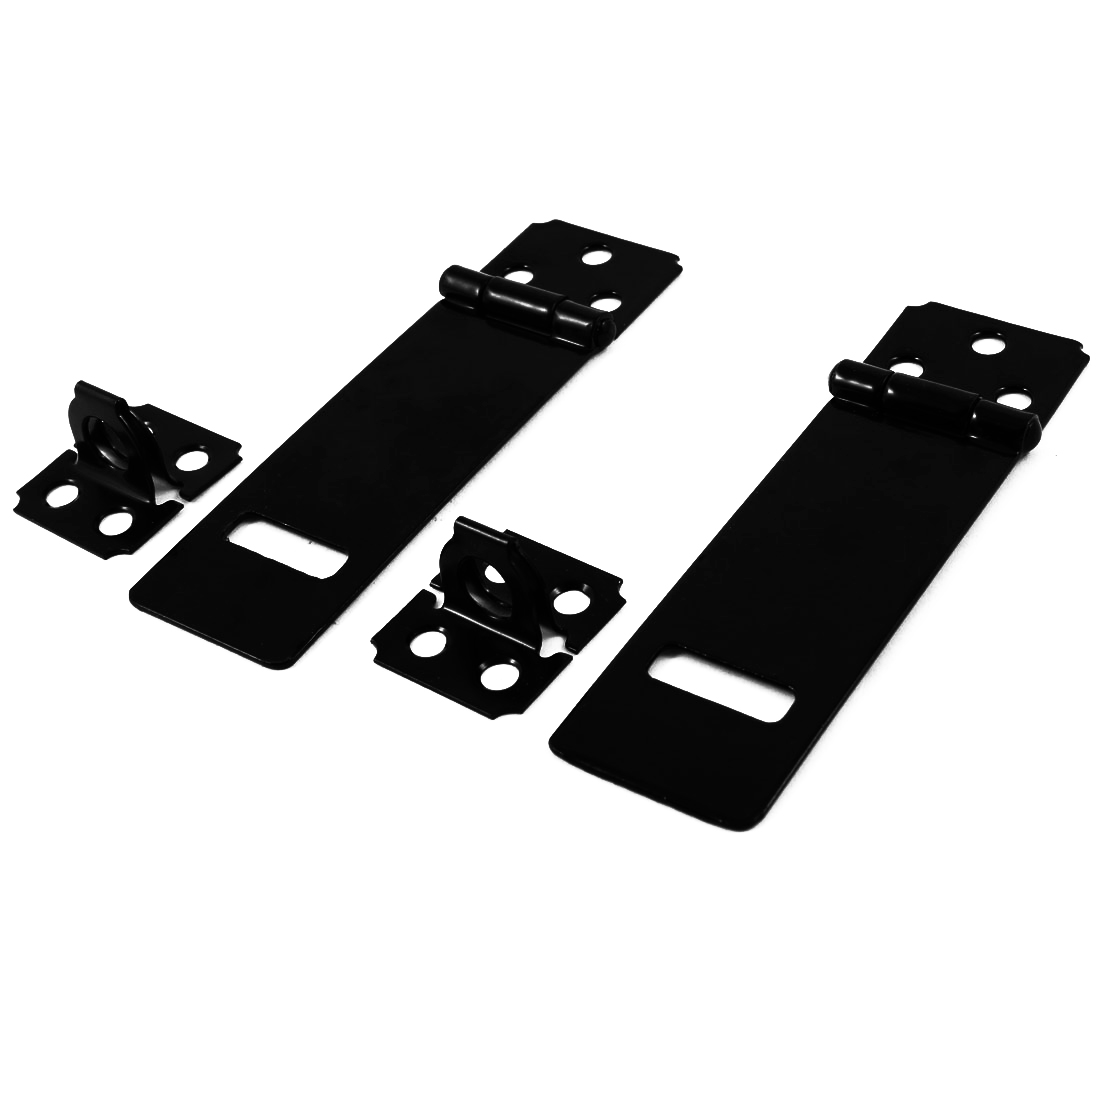 2 Set Door Safety Lock Black Metal Padlock Hasp Staple Set 90mm Long